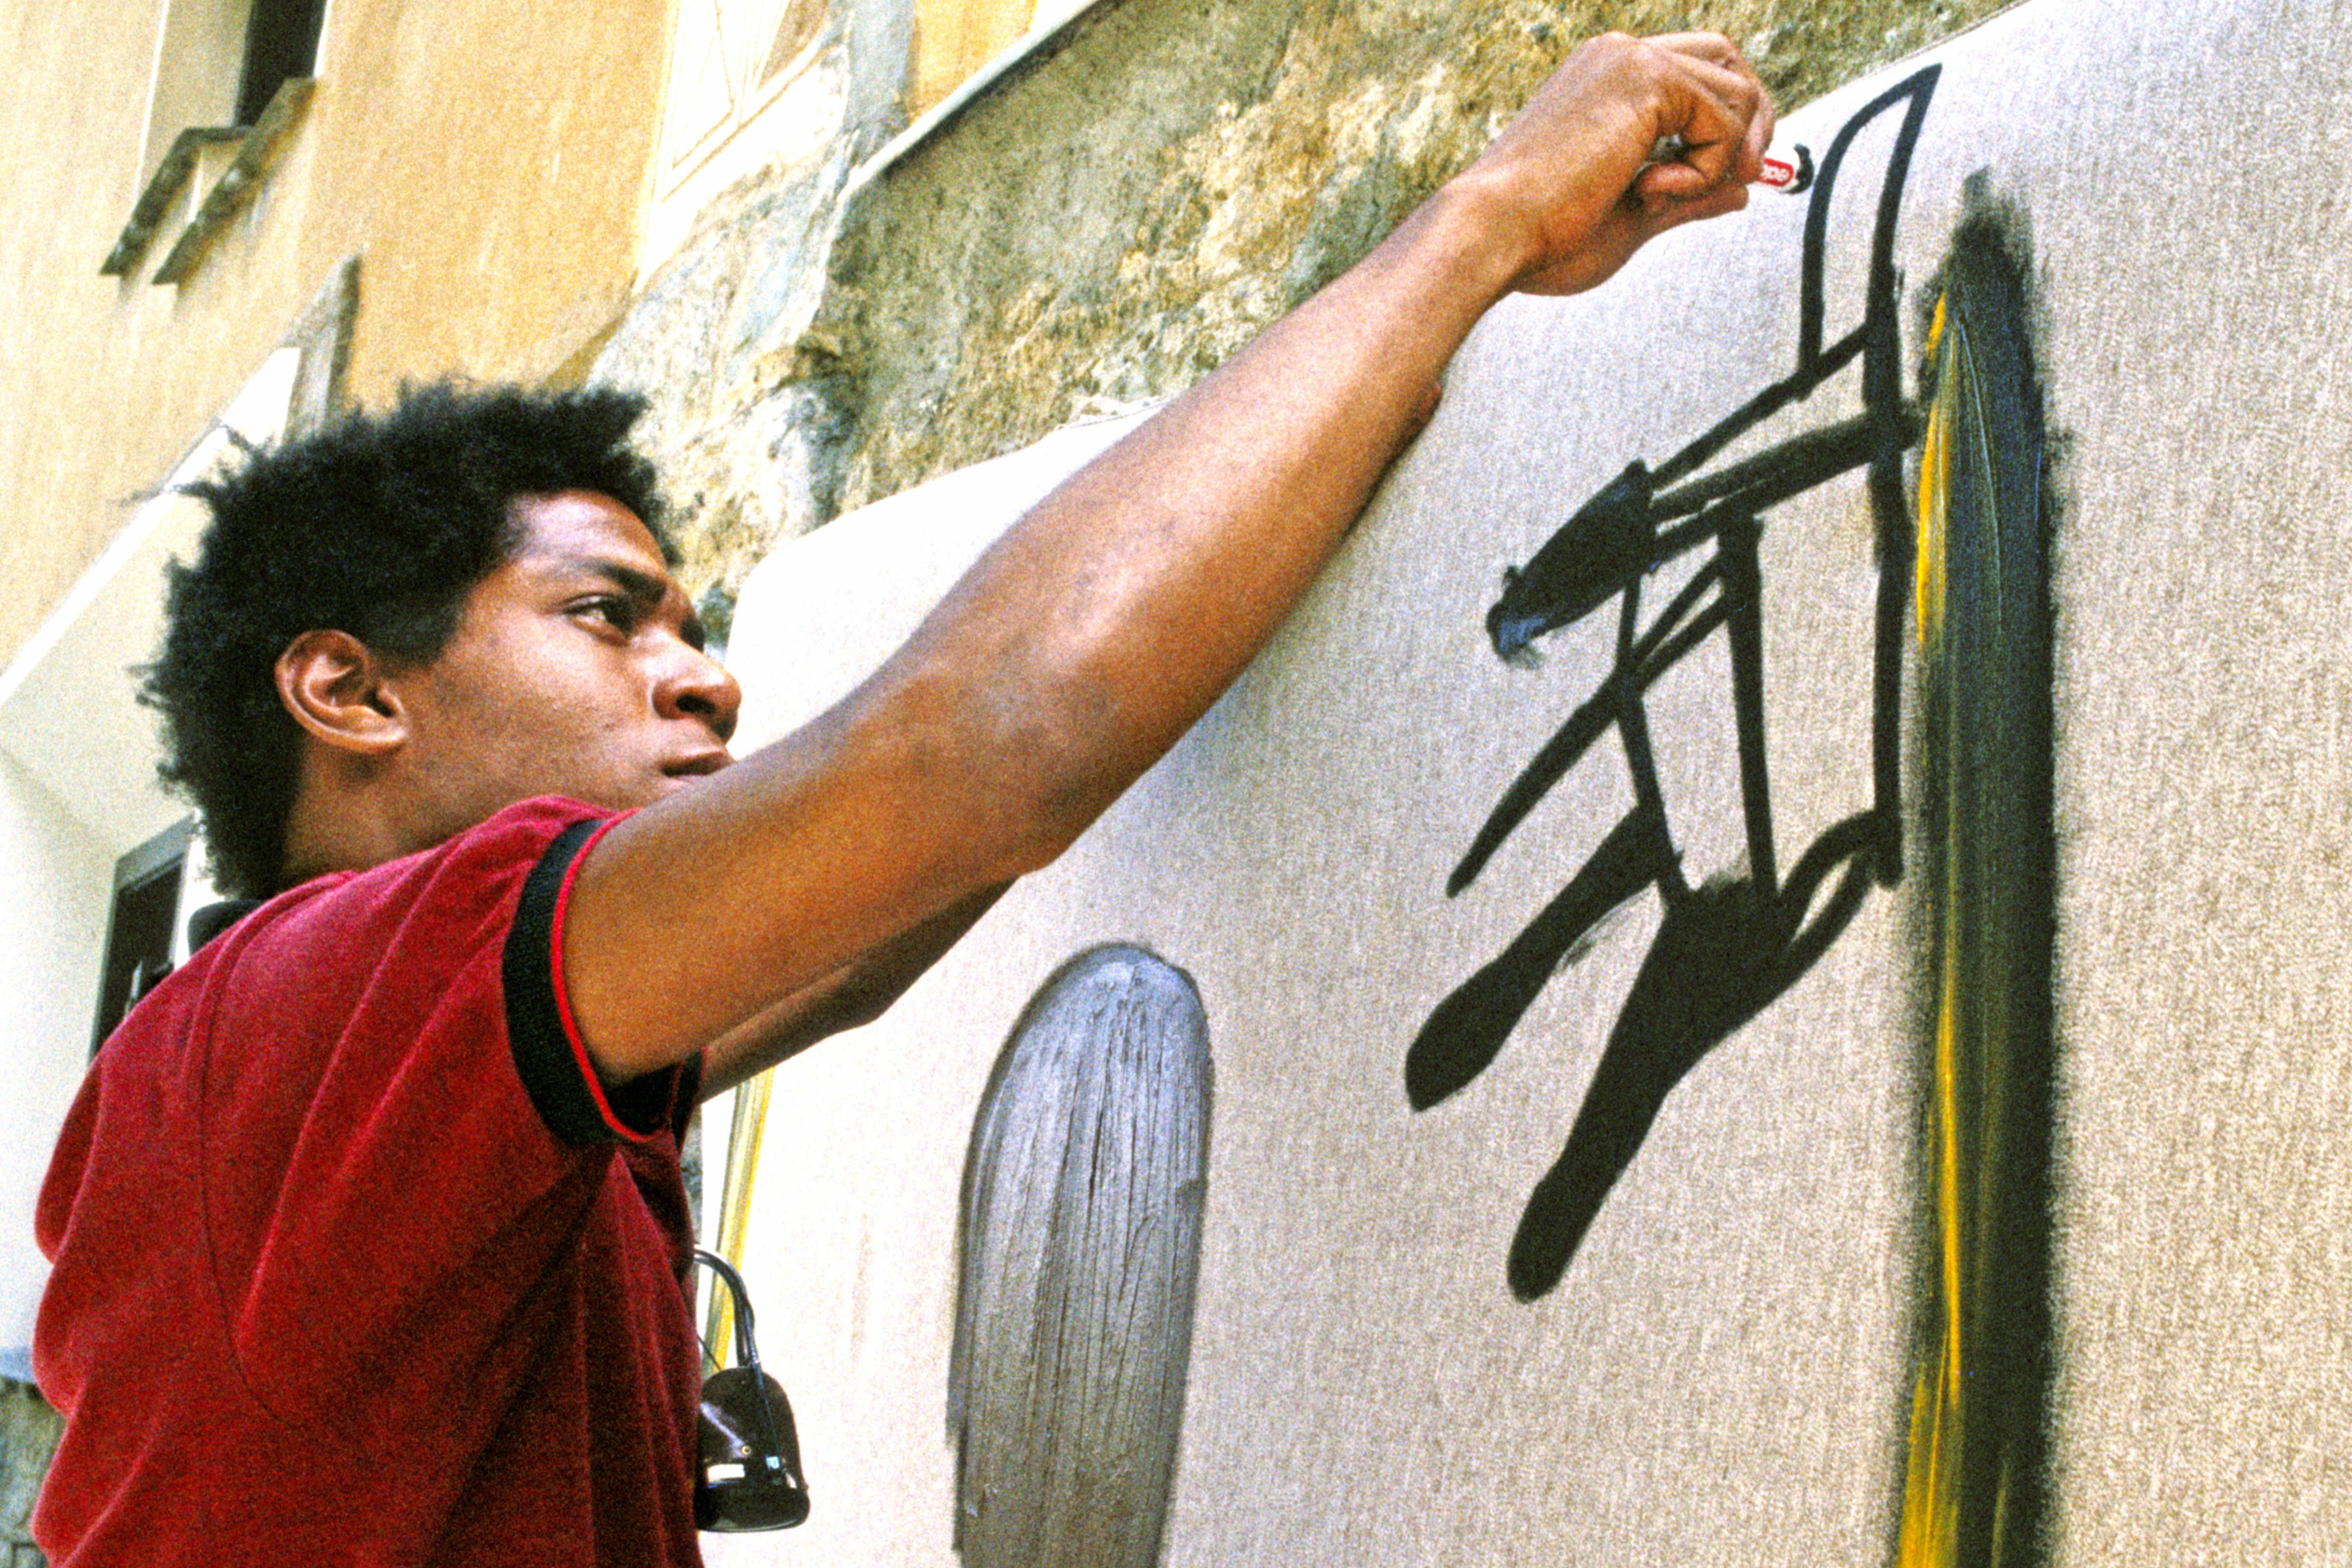 Jean-Michel Basquiat on How to Be an Artist - Artsy